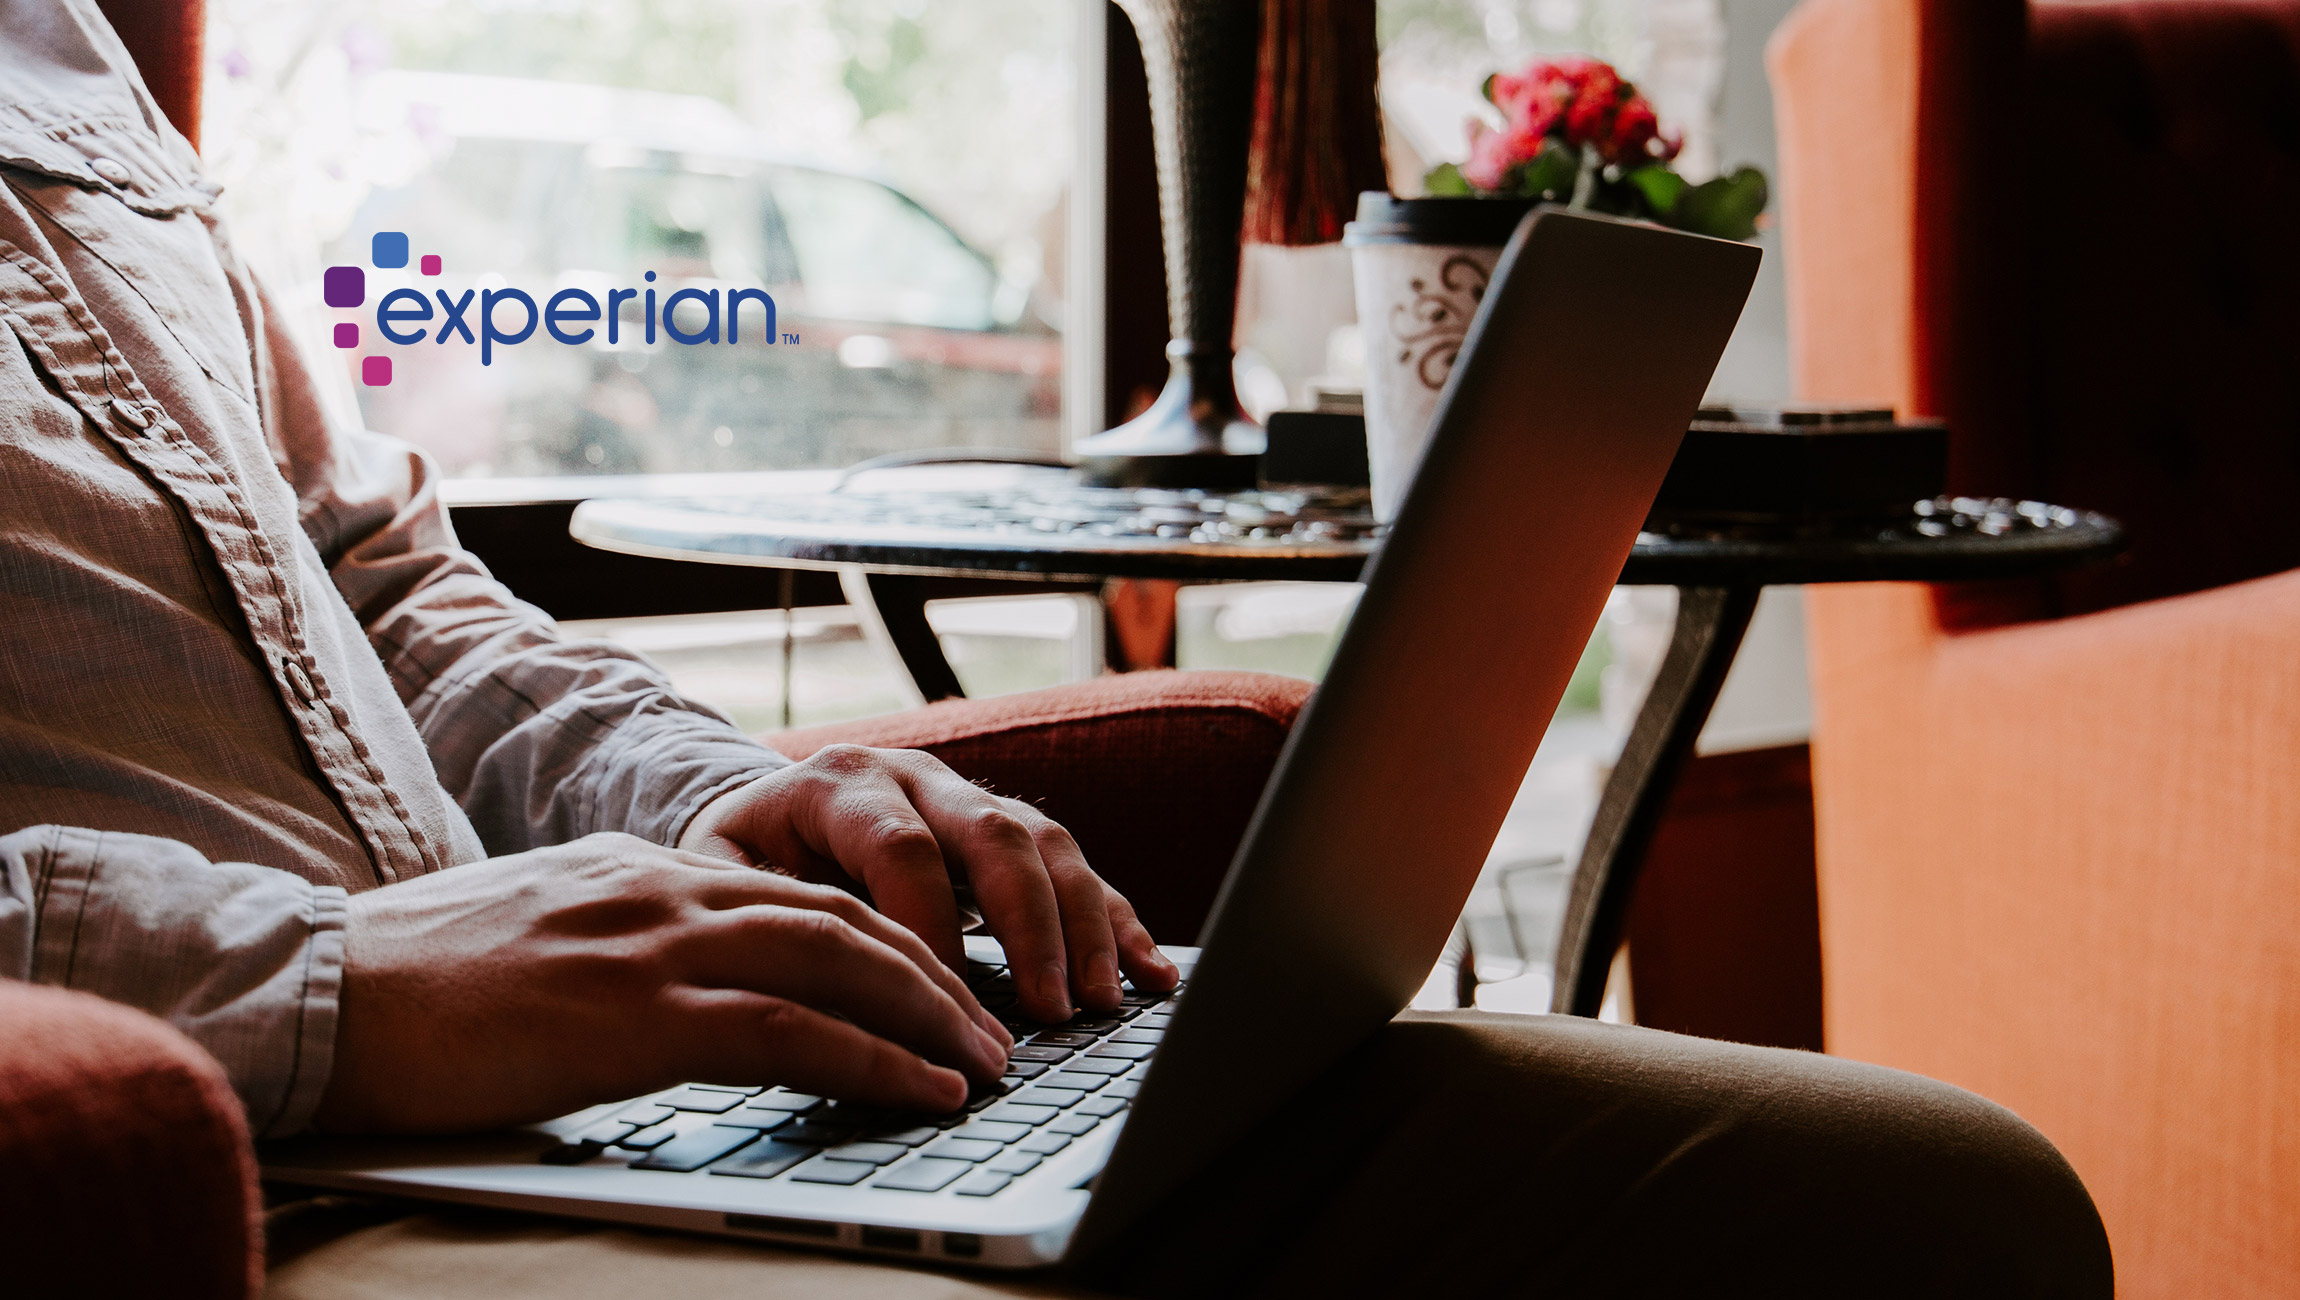 Experian Selected as Leading Provider of Digital Identity Solutions